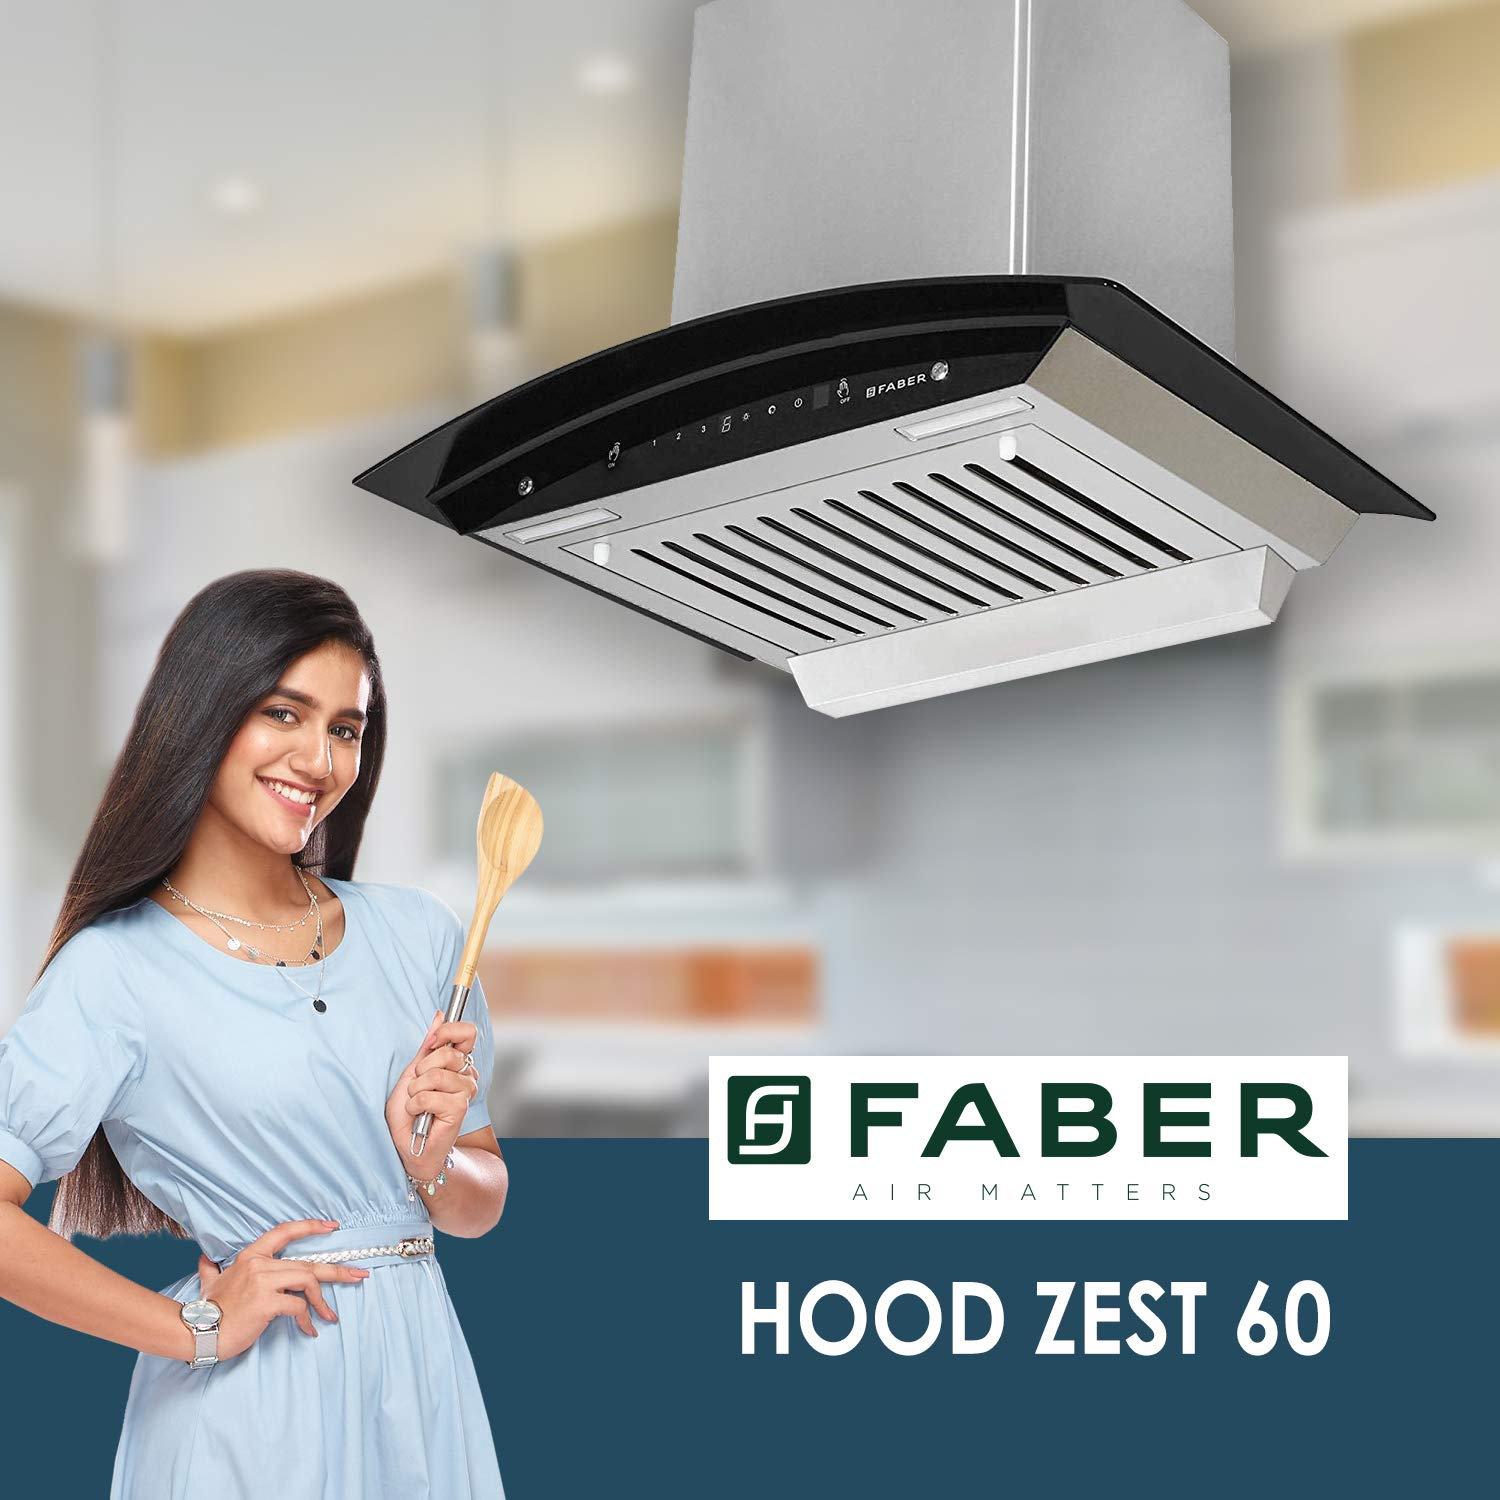 All About Faber Kitchen Chimney (The Good & Bad) 3